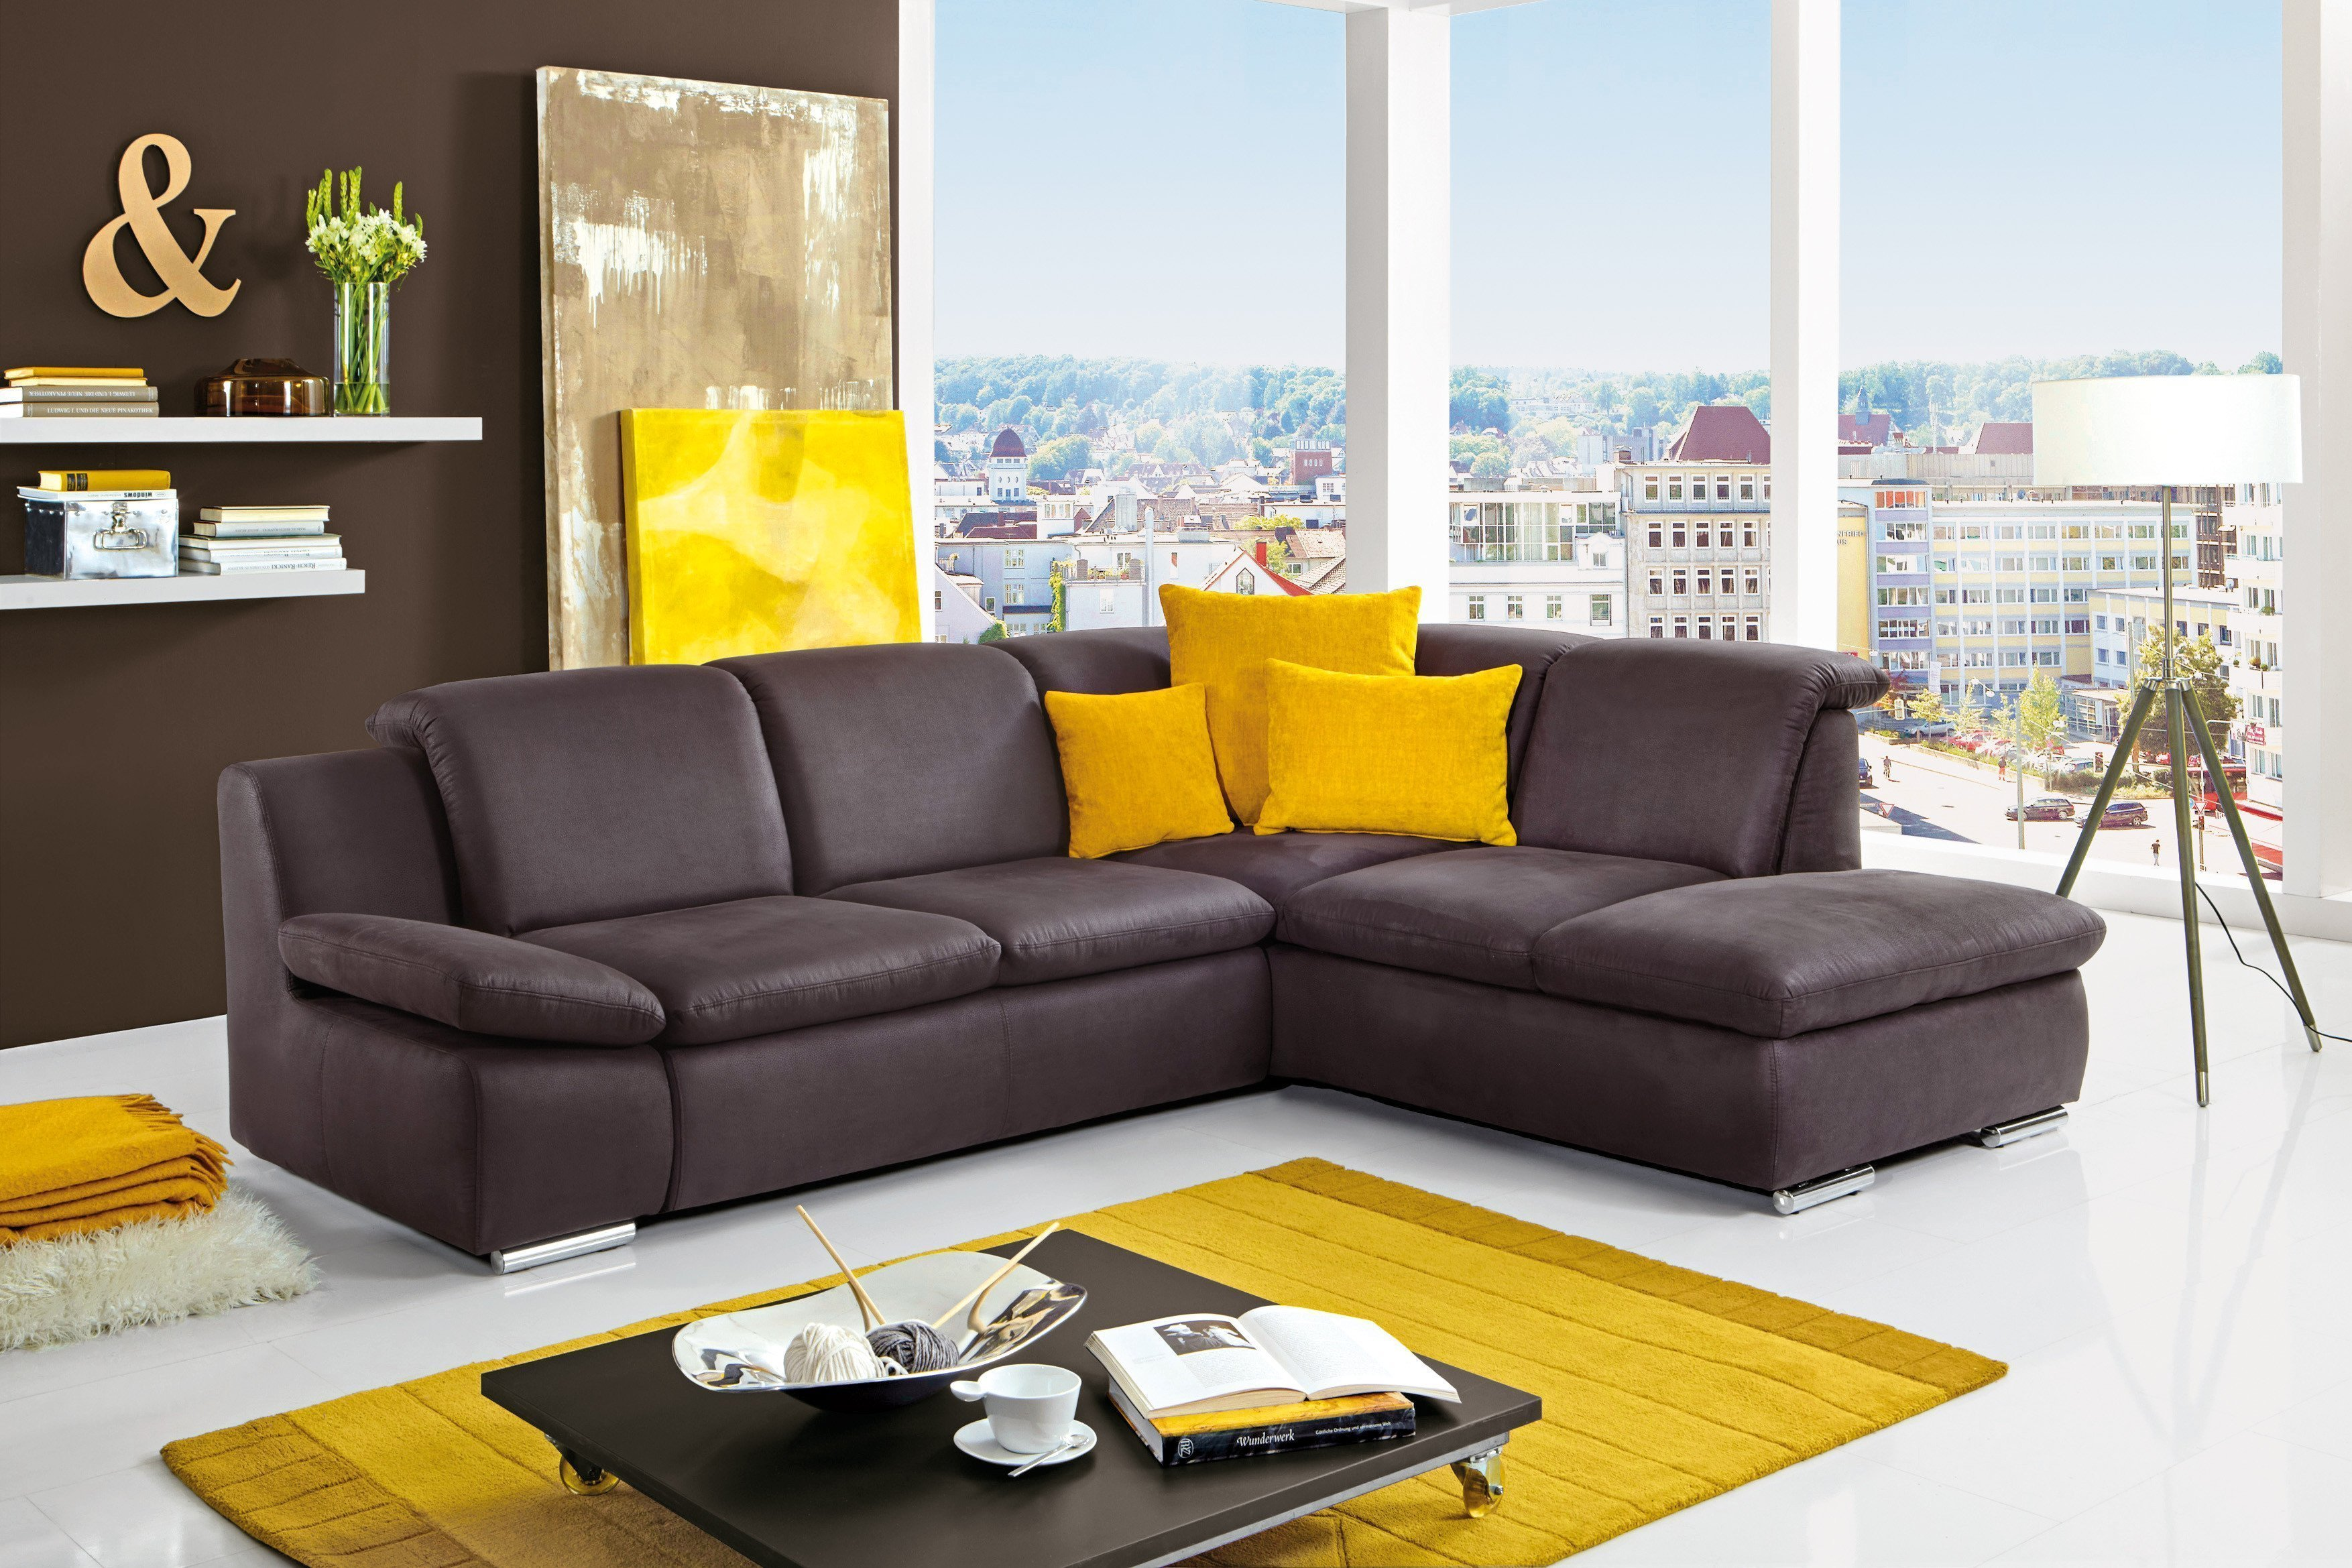 poco ecksofa isona in anthrazit m bel letz ihr online shop. Black Bedroom Furniture Sets. Home Design Ideas